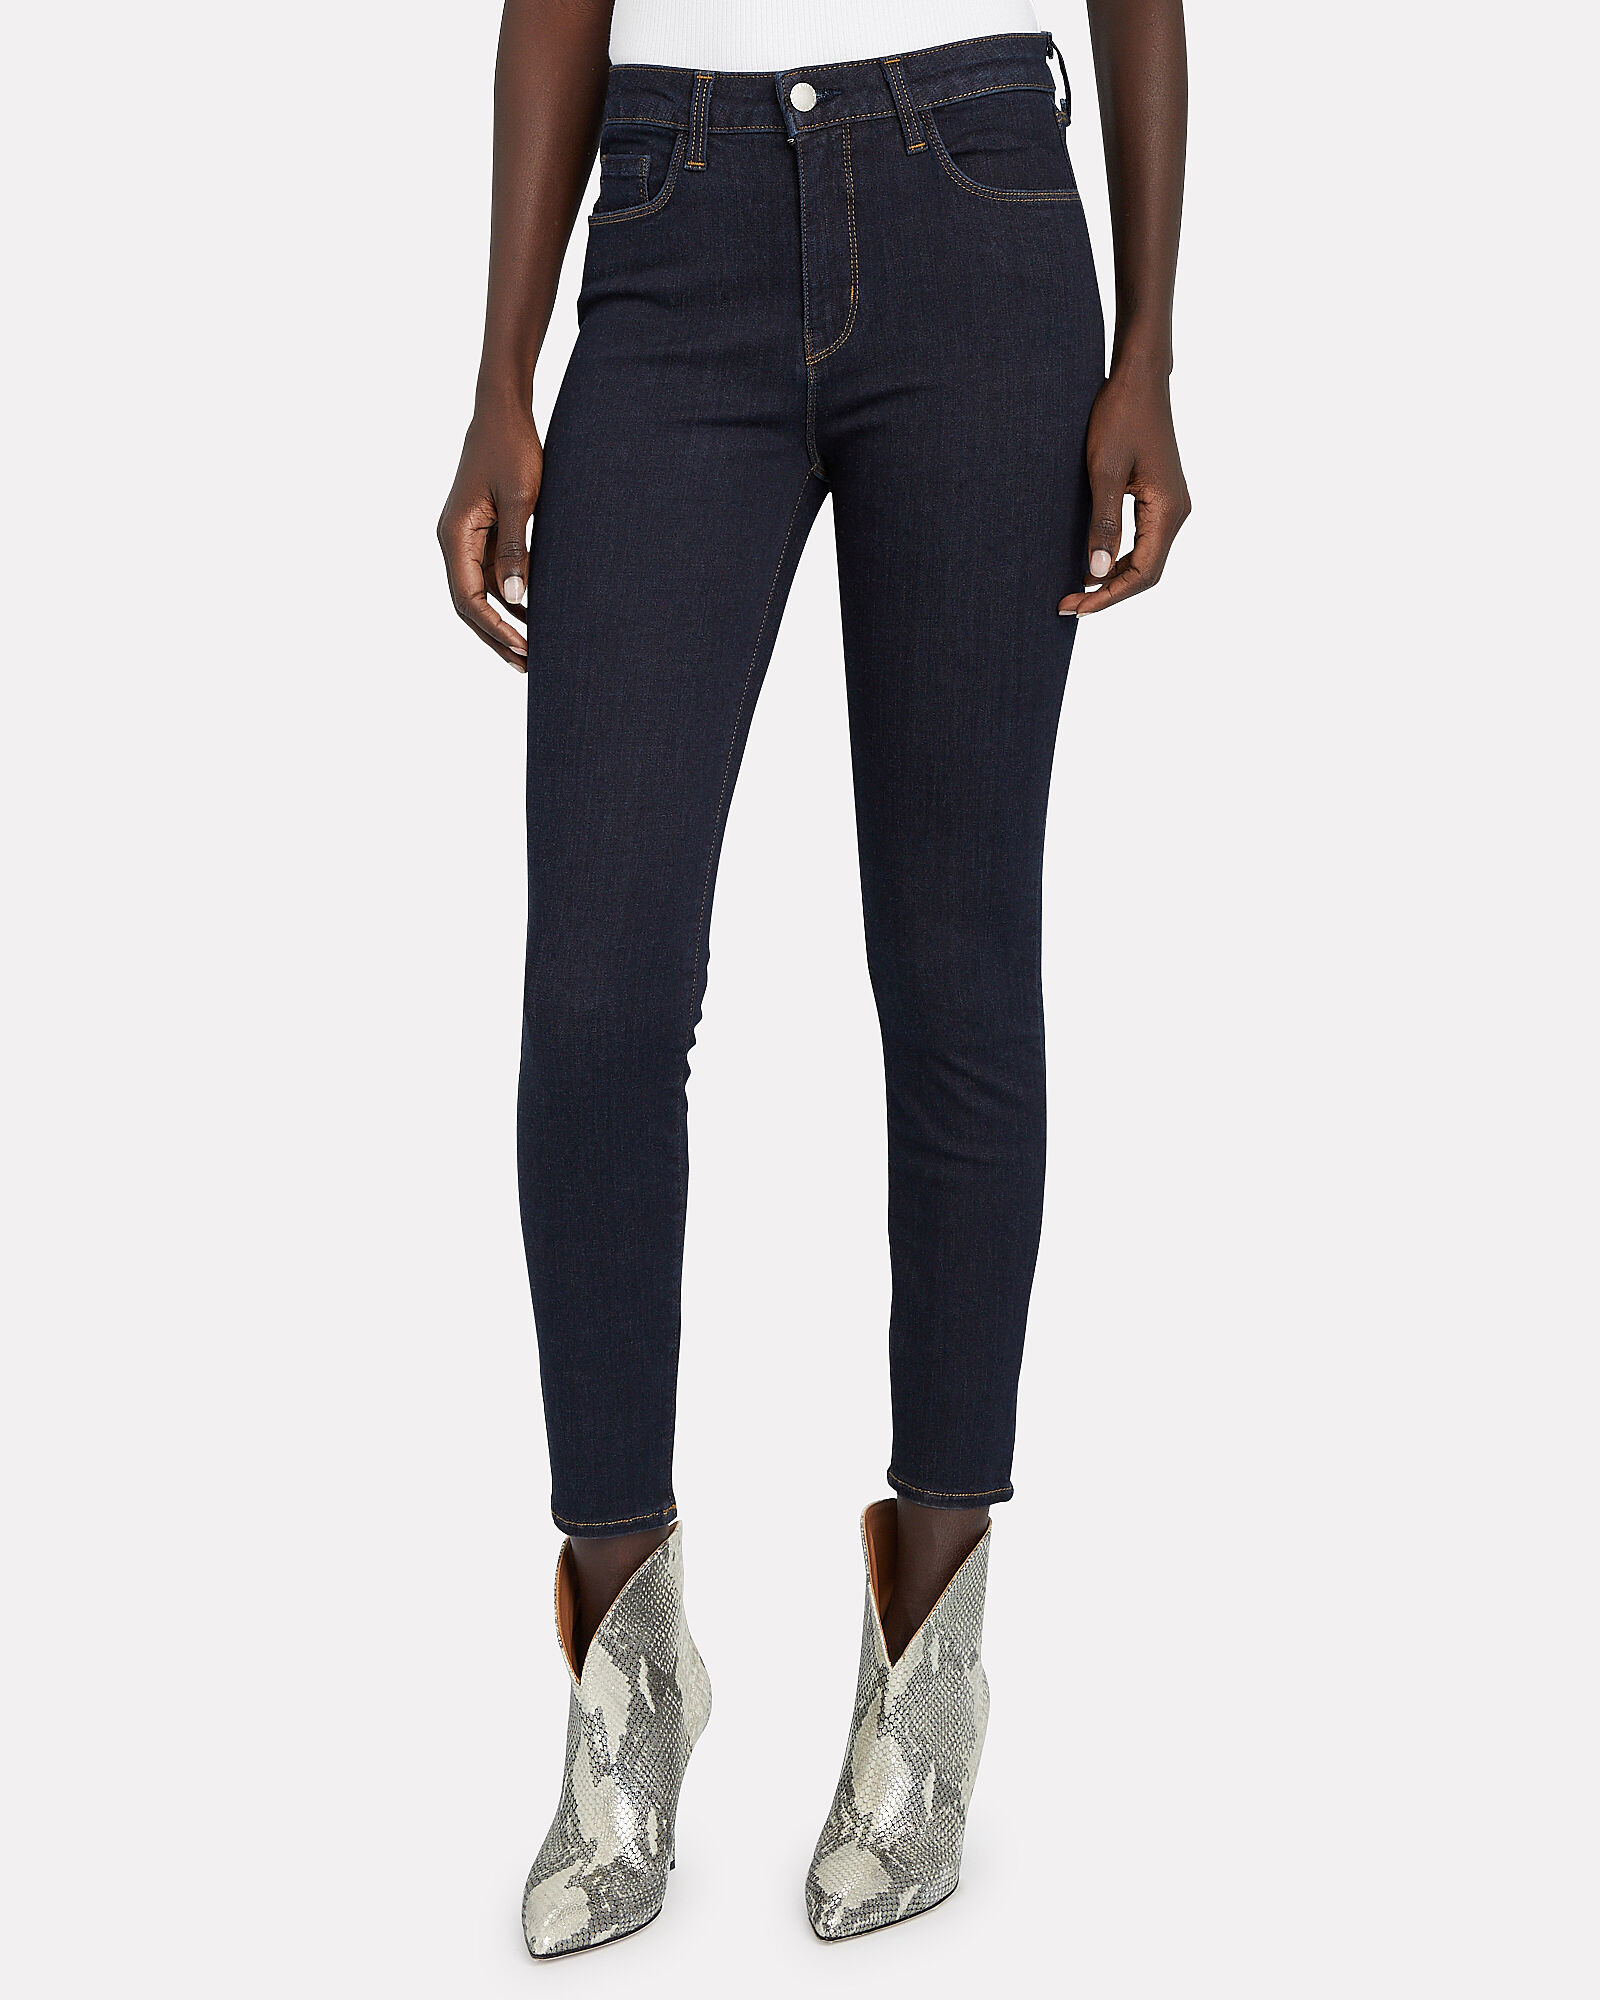 Margot High-Rise Skinny Jeans, DENIM-DRK, hi-res